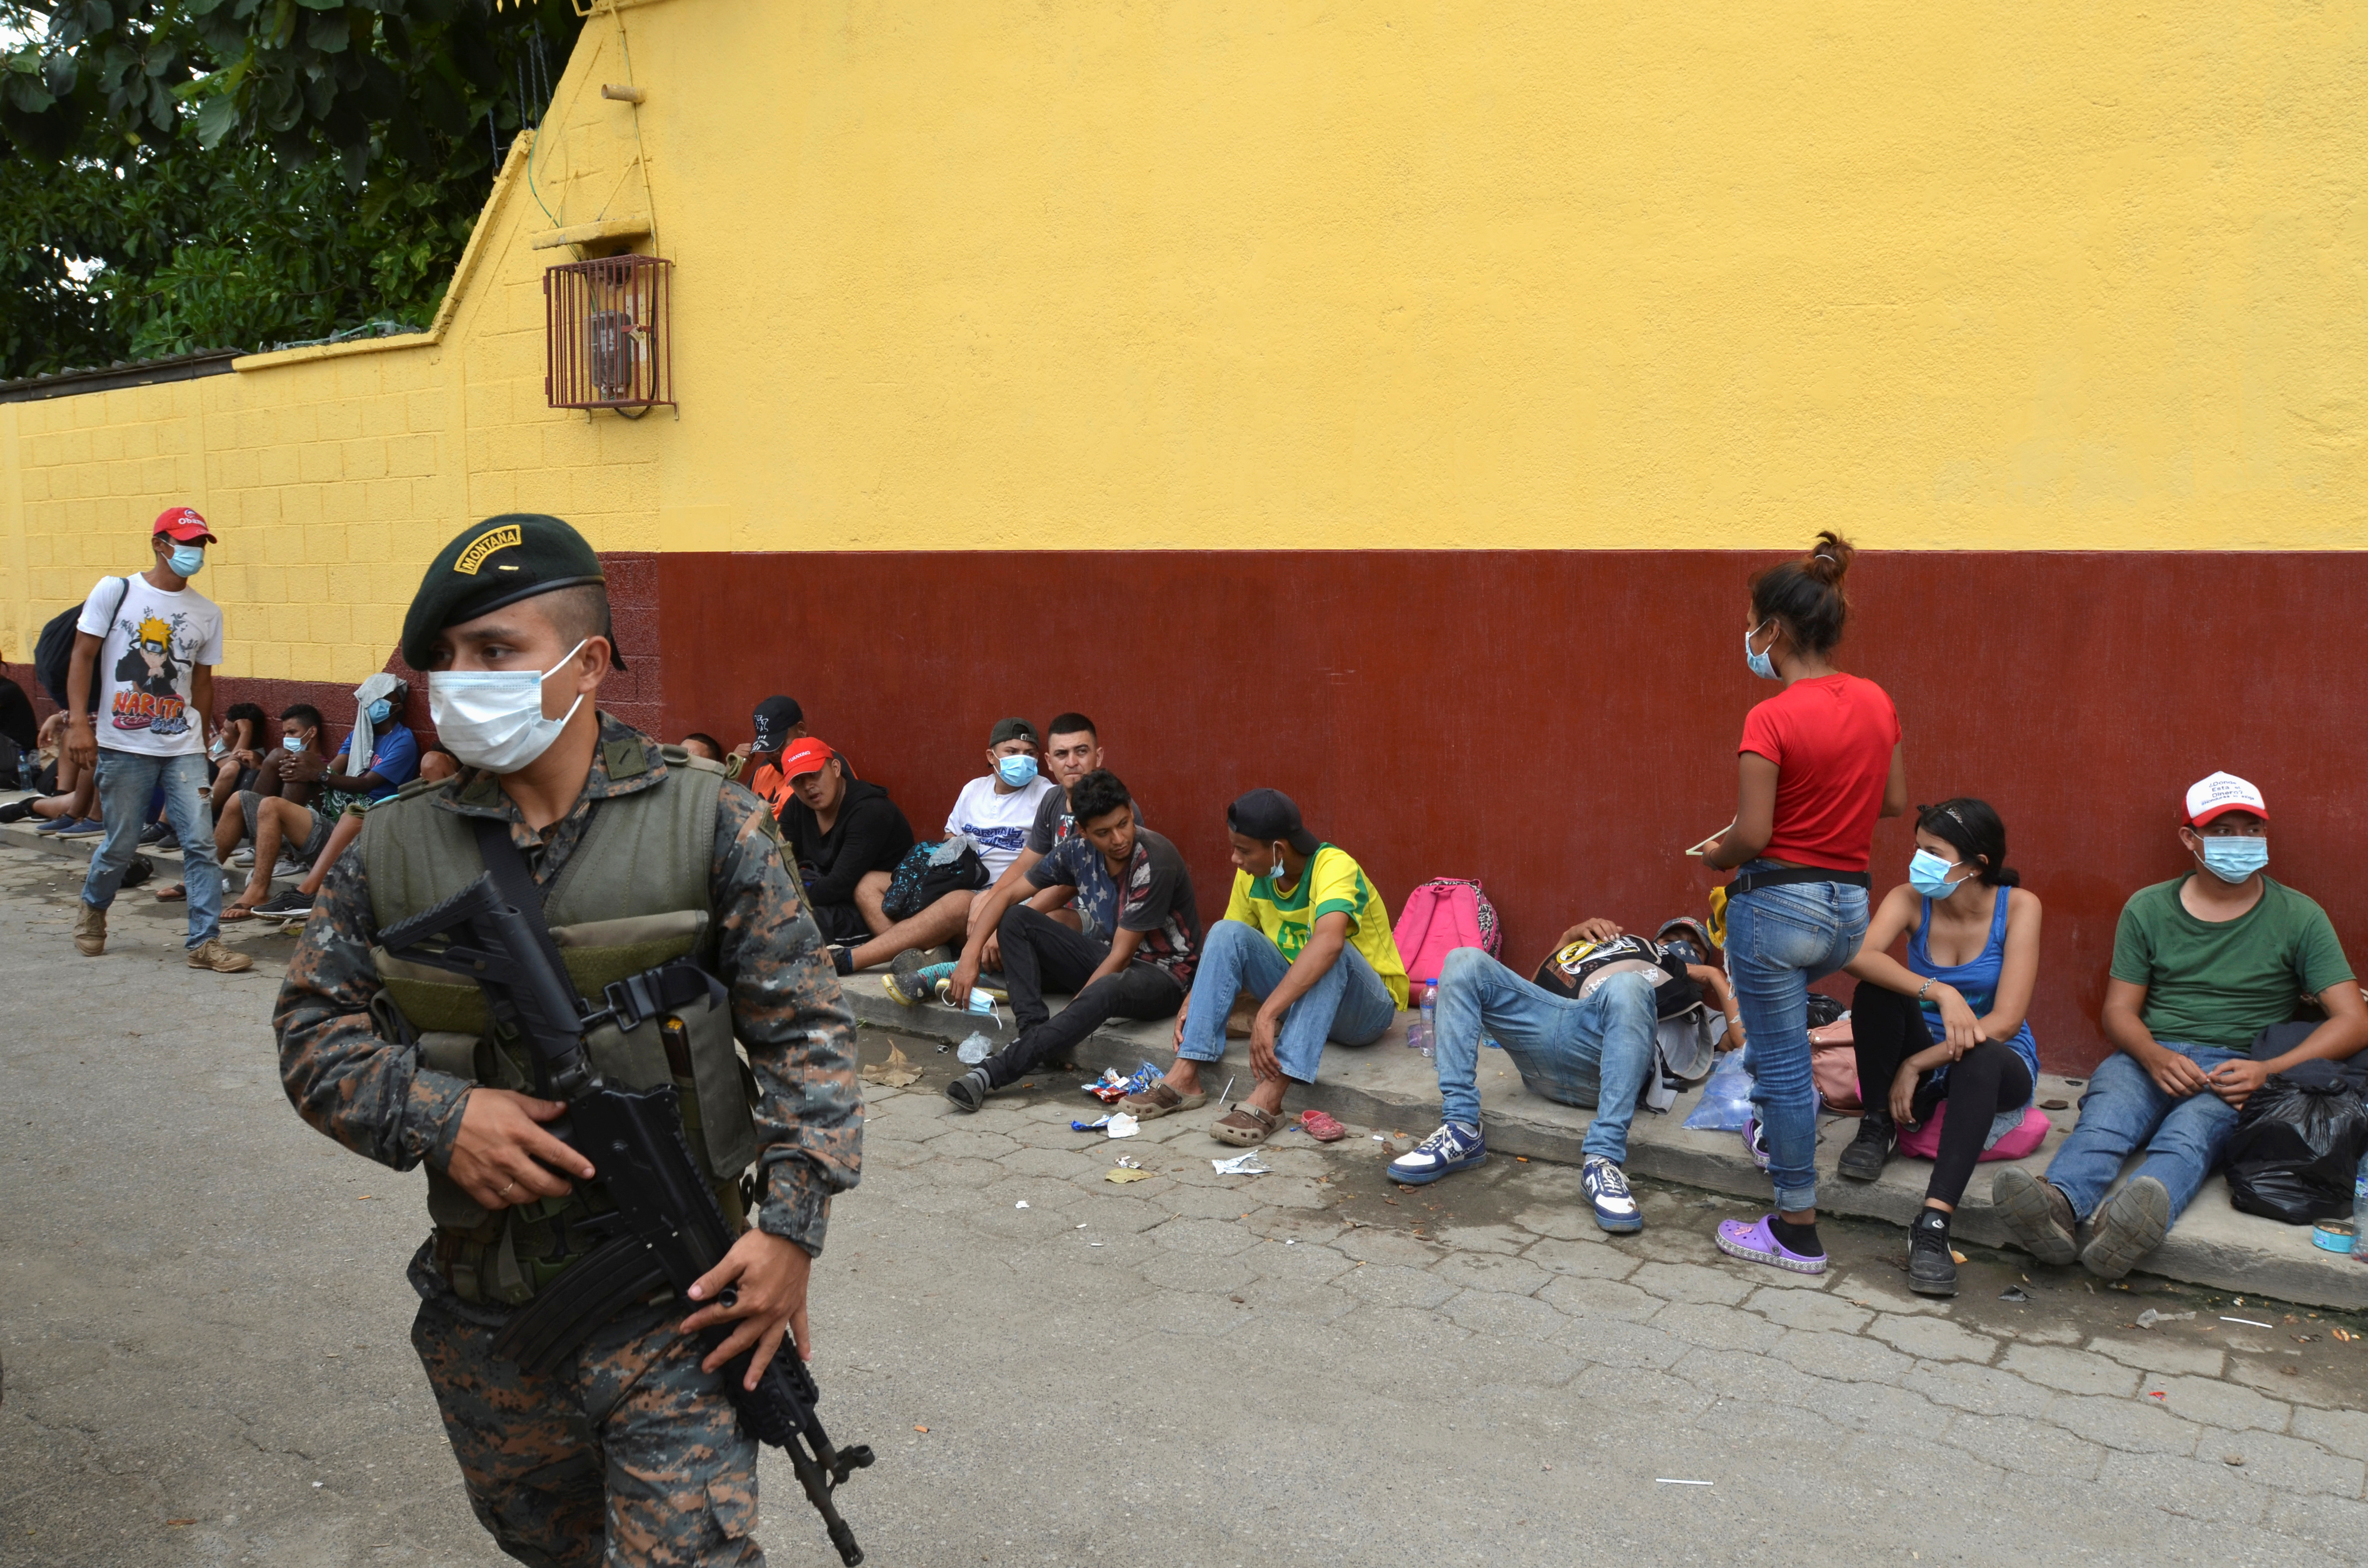 A Guatemalan soldier patrols to prevent a group of Honduran migrants who are trying to reach the U.S. , from moving towards the Guatemala and Mexico border, as they sit outside the migrant shelter, in Tecun Uman, Guatemala October 3, 2020. REUTERS/Jose Torres